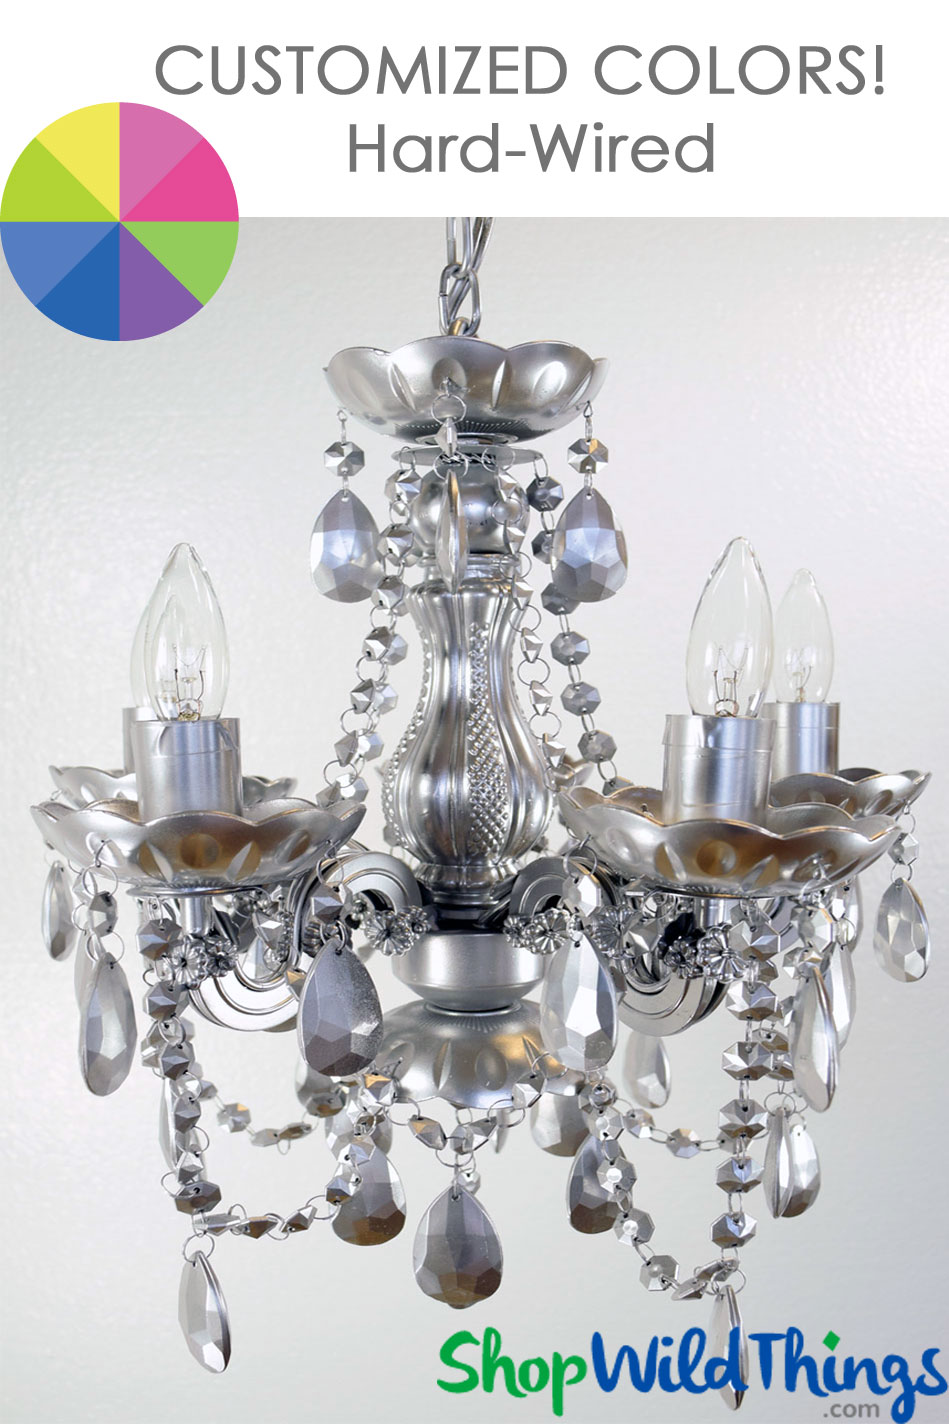 uk urban tesco ceiling of multicolored small chandelier size outfittersers colored lamp gypsy junk clear chandeliers gypsyer pink nz full pendant silly